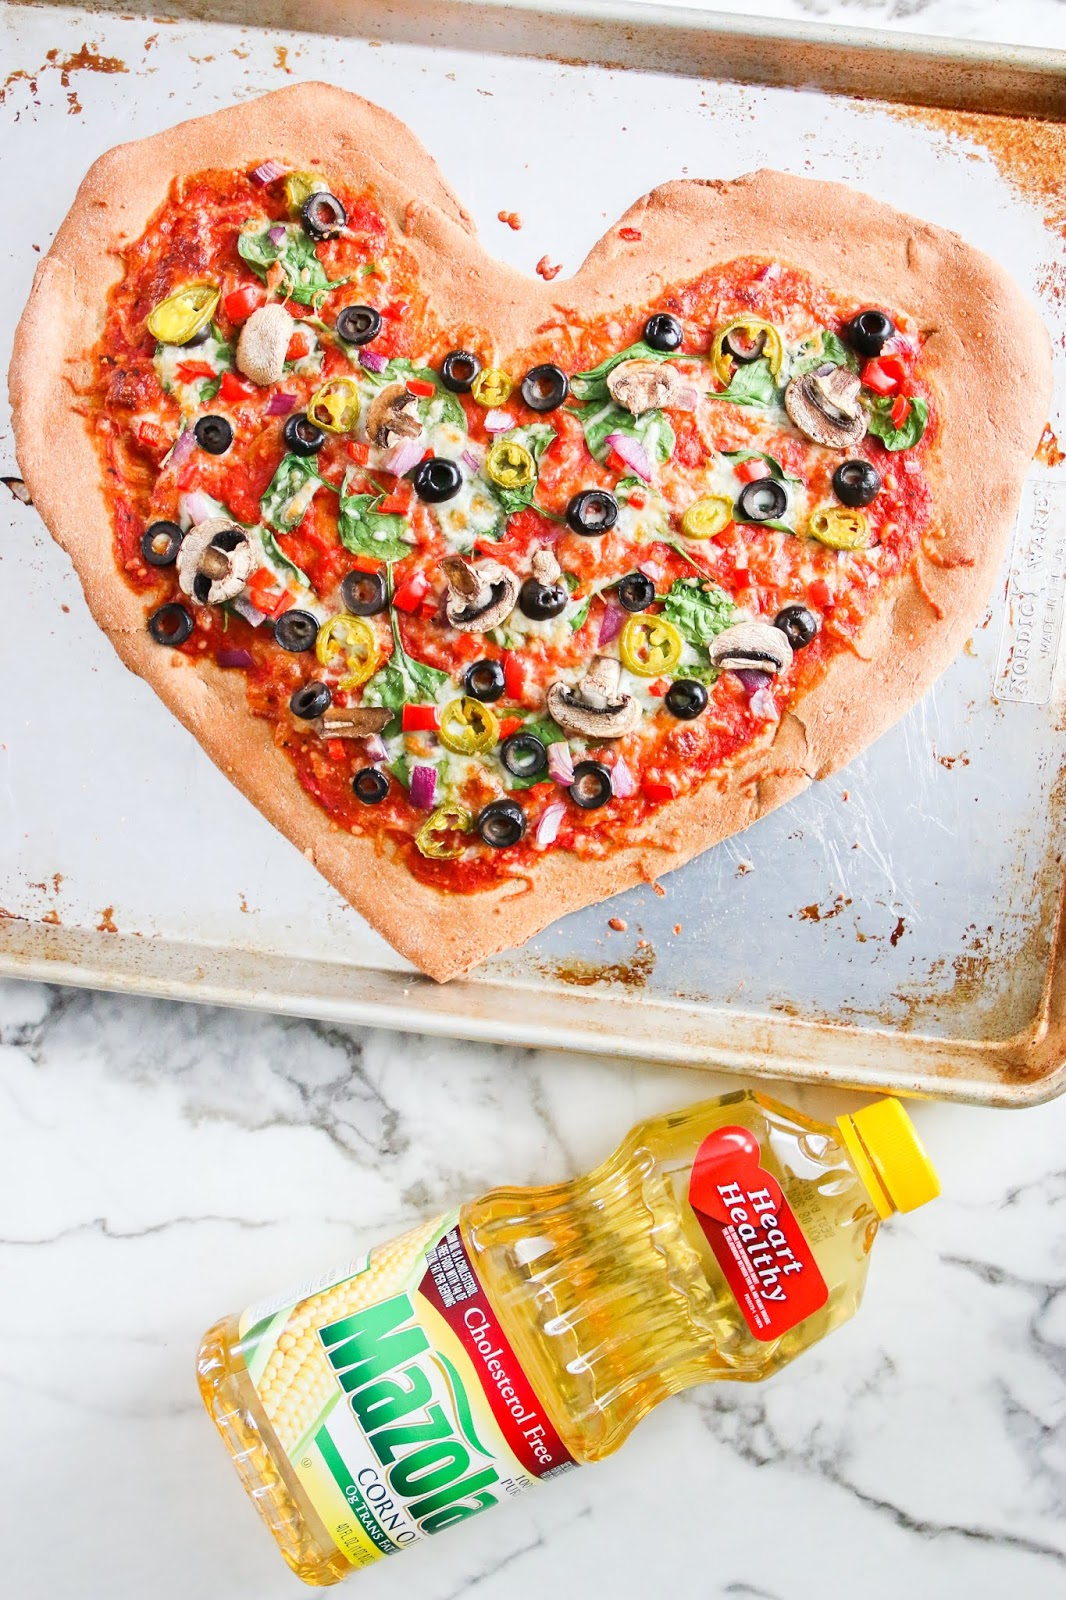 Vegetarian pizza toppings. Whole wheat veggie pizza calories. Thin crust veggie pizza recipe. Whole wheat pizza dough Gourmet vegetarian pizza recipe. Vegetarian pizza ingredients. Italian vegetarian pizza. Spicy vegetarian pizza.